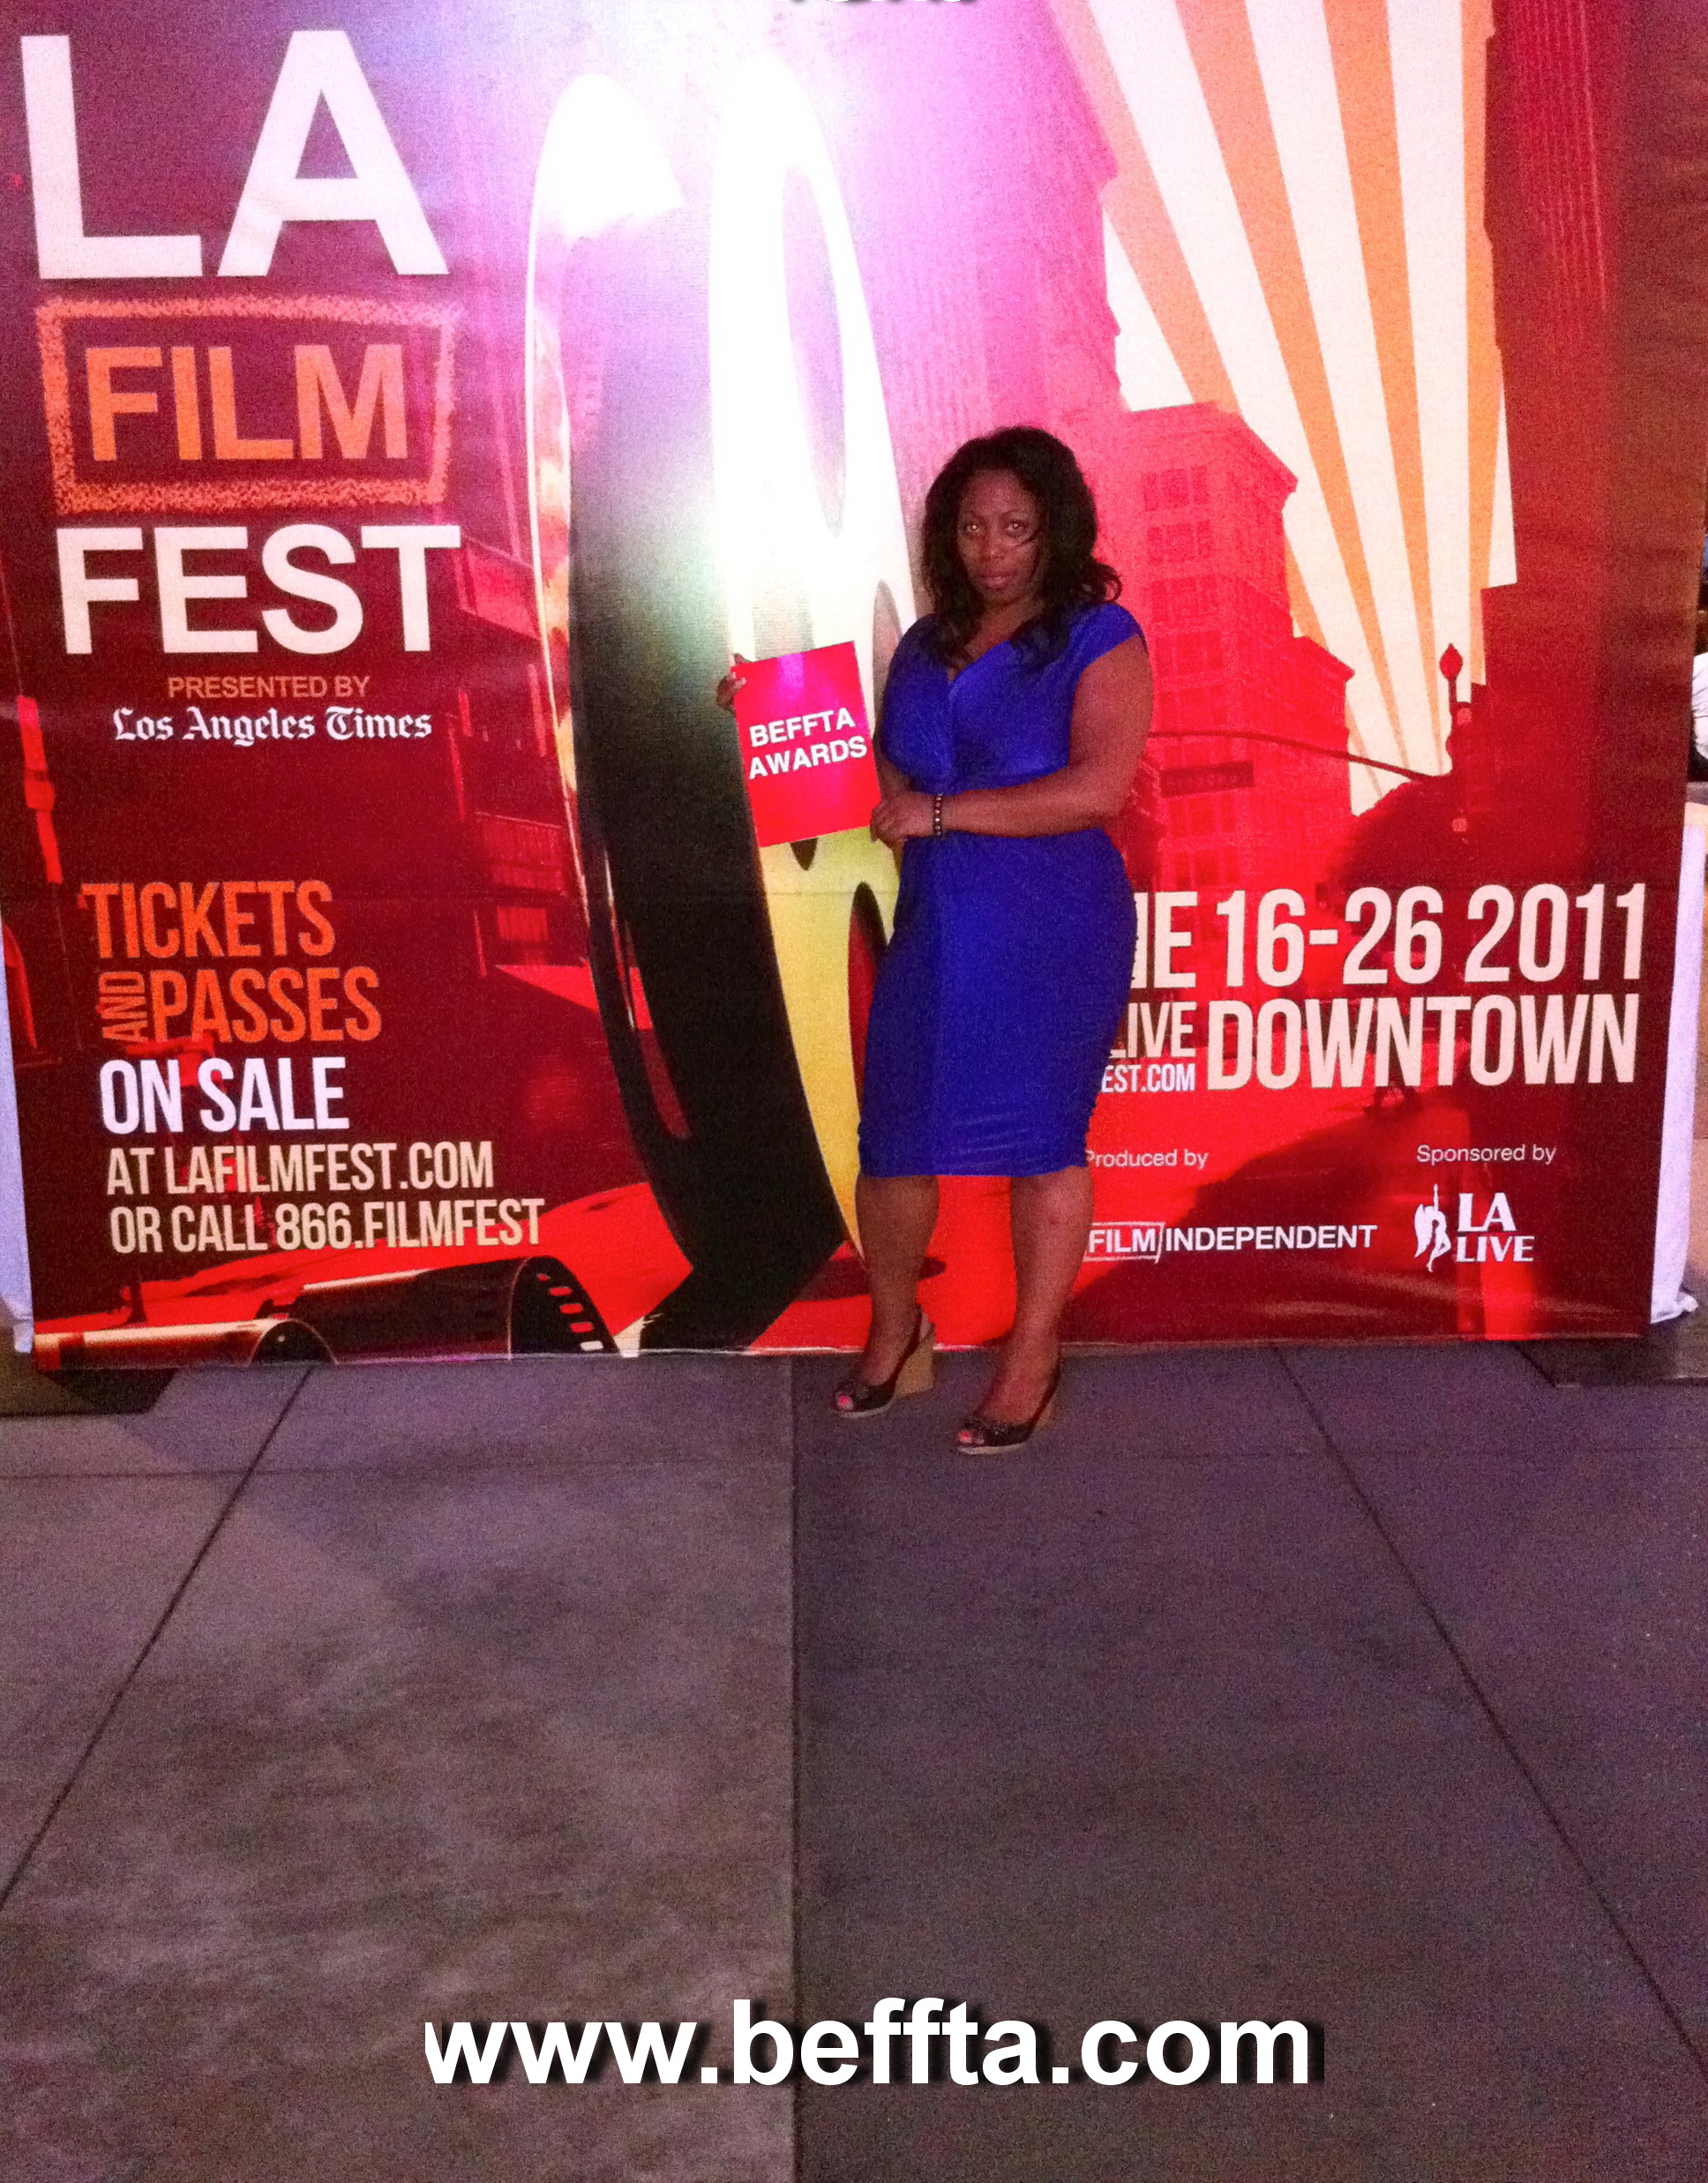 BEFFTA international manager Verona White at Los Angeles Film Festival